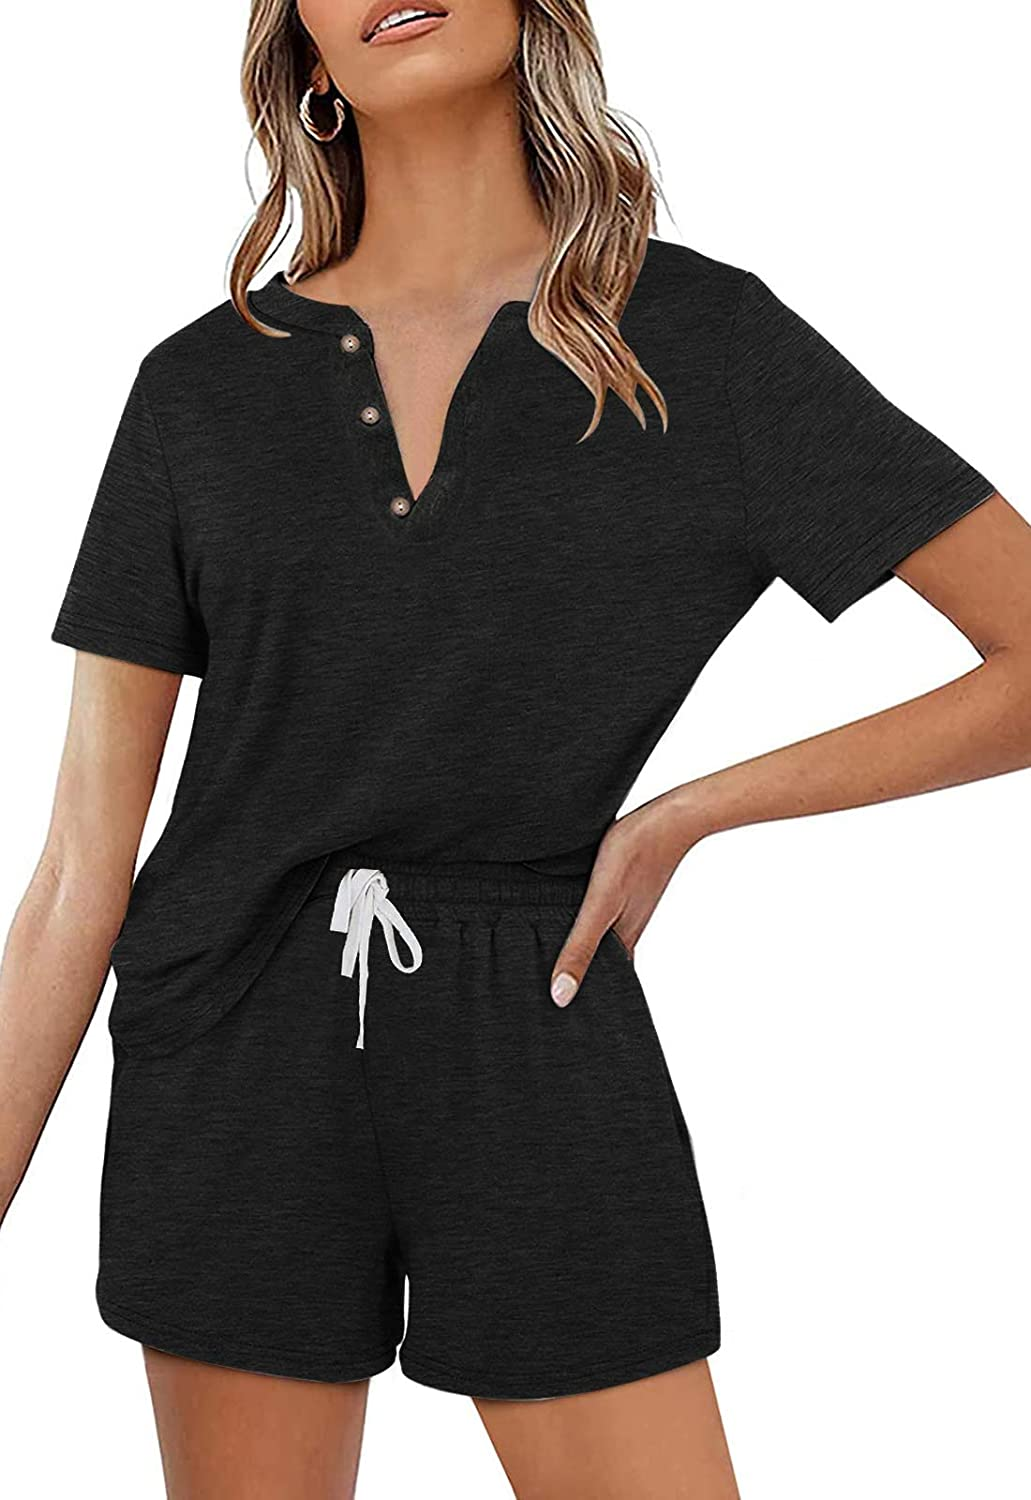 Women's 2 Piece Pajama Set Short Sleeve Henley Tops and Drawstring Shorts Sleepwear Loungewear Outfits with Pocket